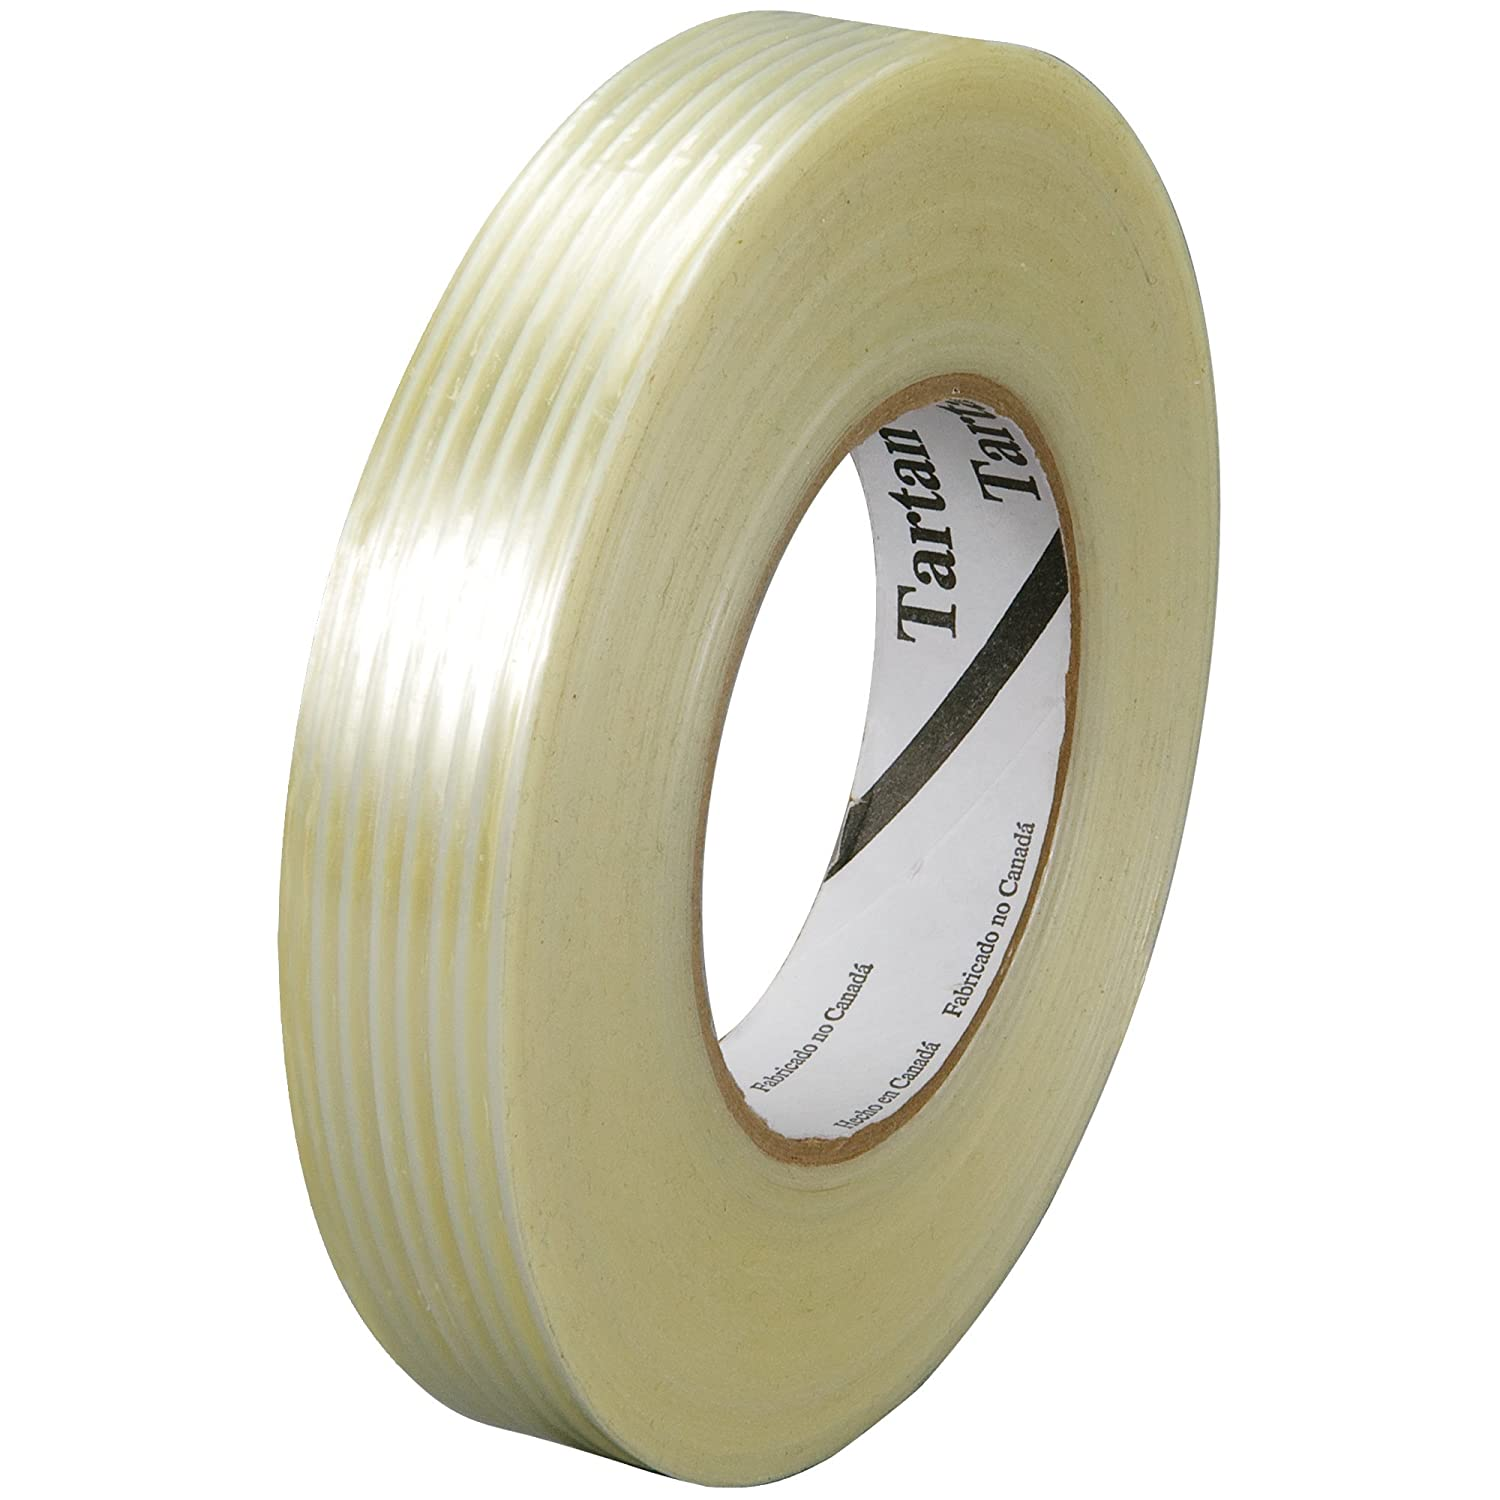 Top Pack Supply 3M 8932 Strapping Tape 3.75 4